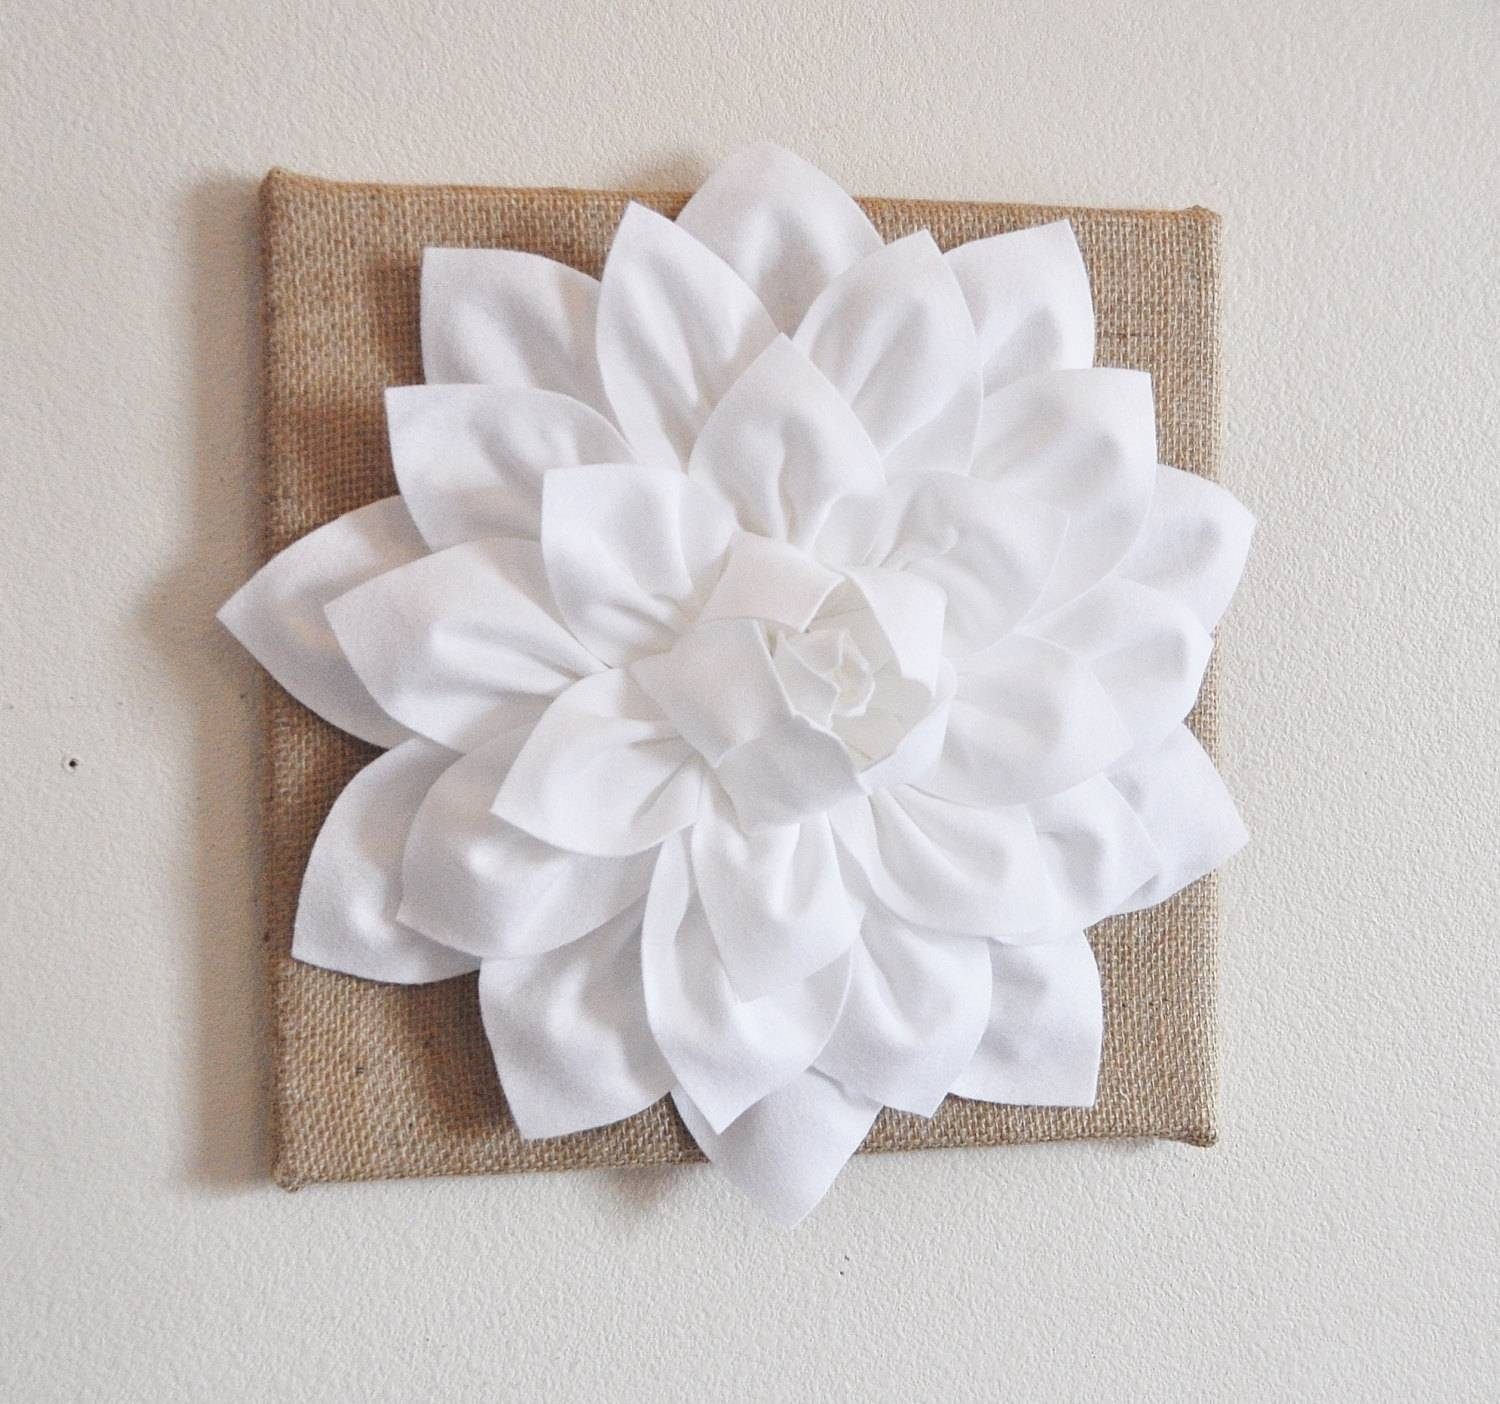 Wall Flower White Dahlia On Burlap 12 X12 Canvas Wall Intended For 2018 Flowers 3d Wall Art (View 3 of 20)